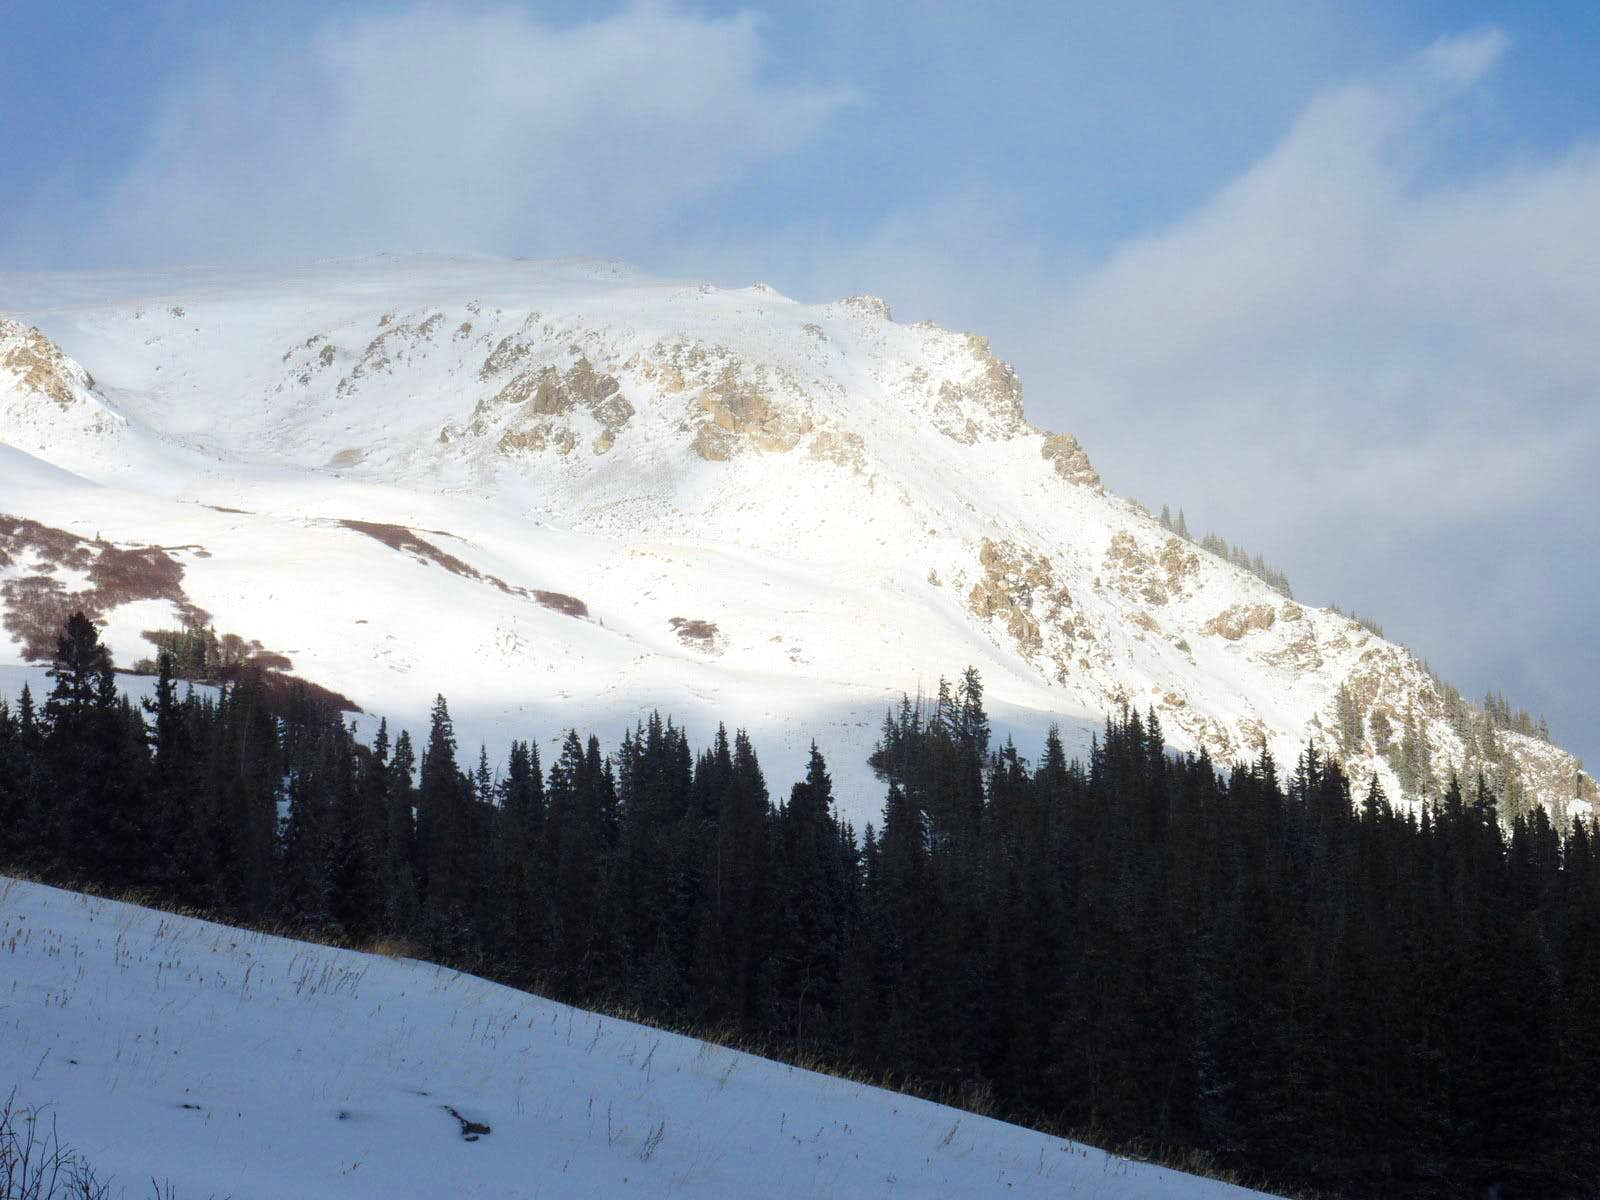 Independence Mountain B 12,614' and Bear Mountain 12,582' loop